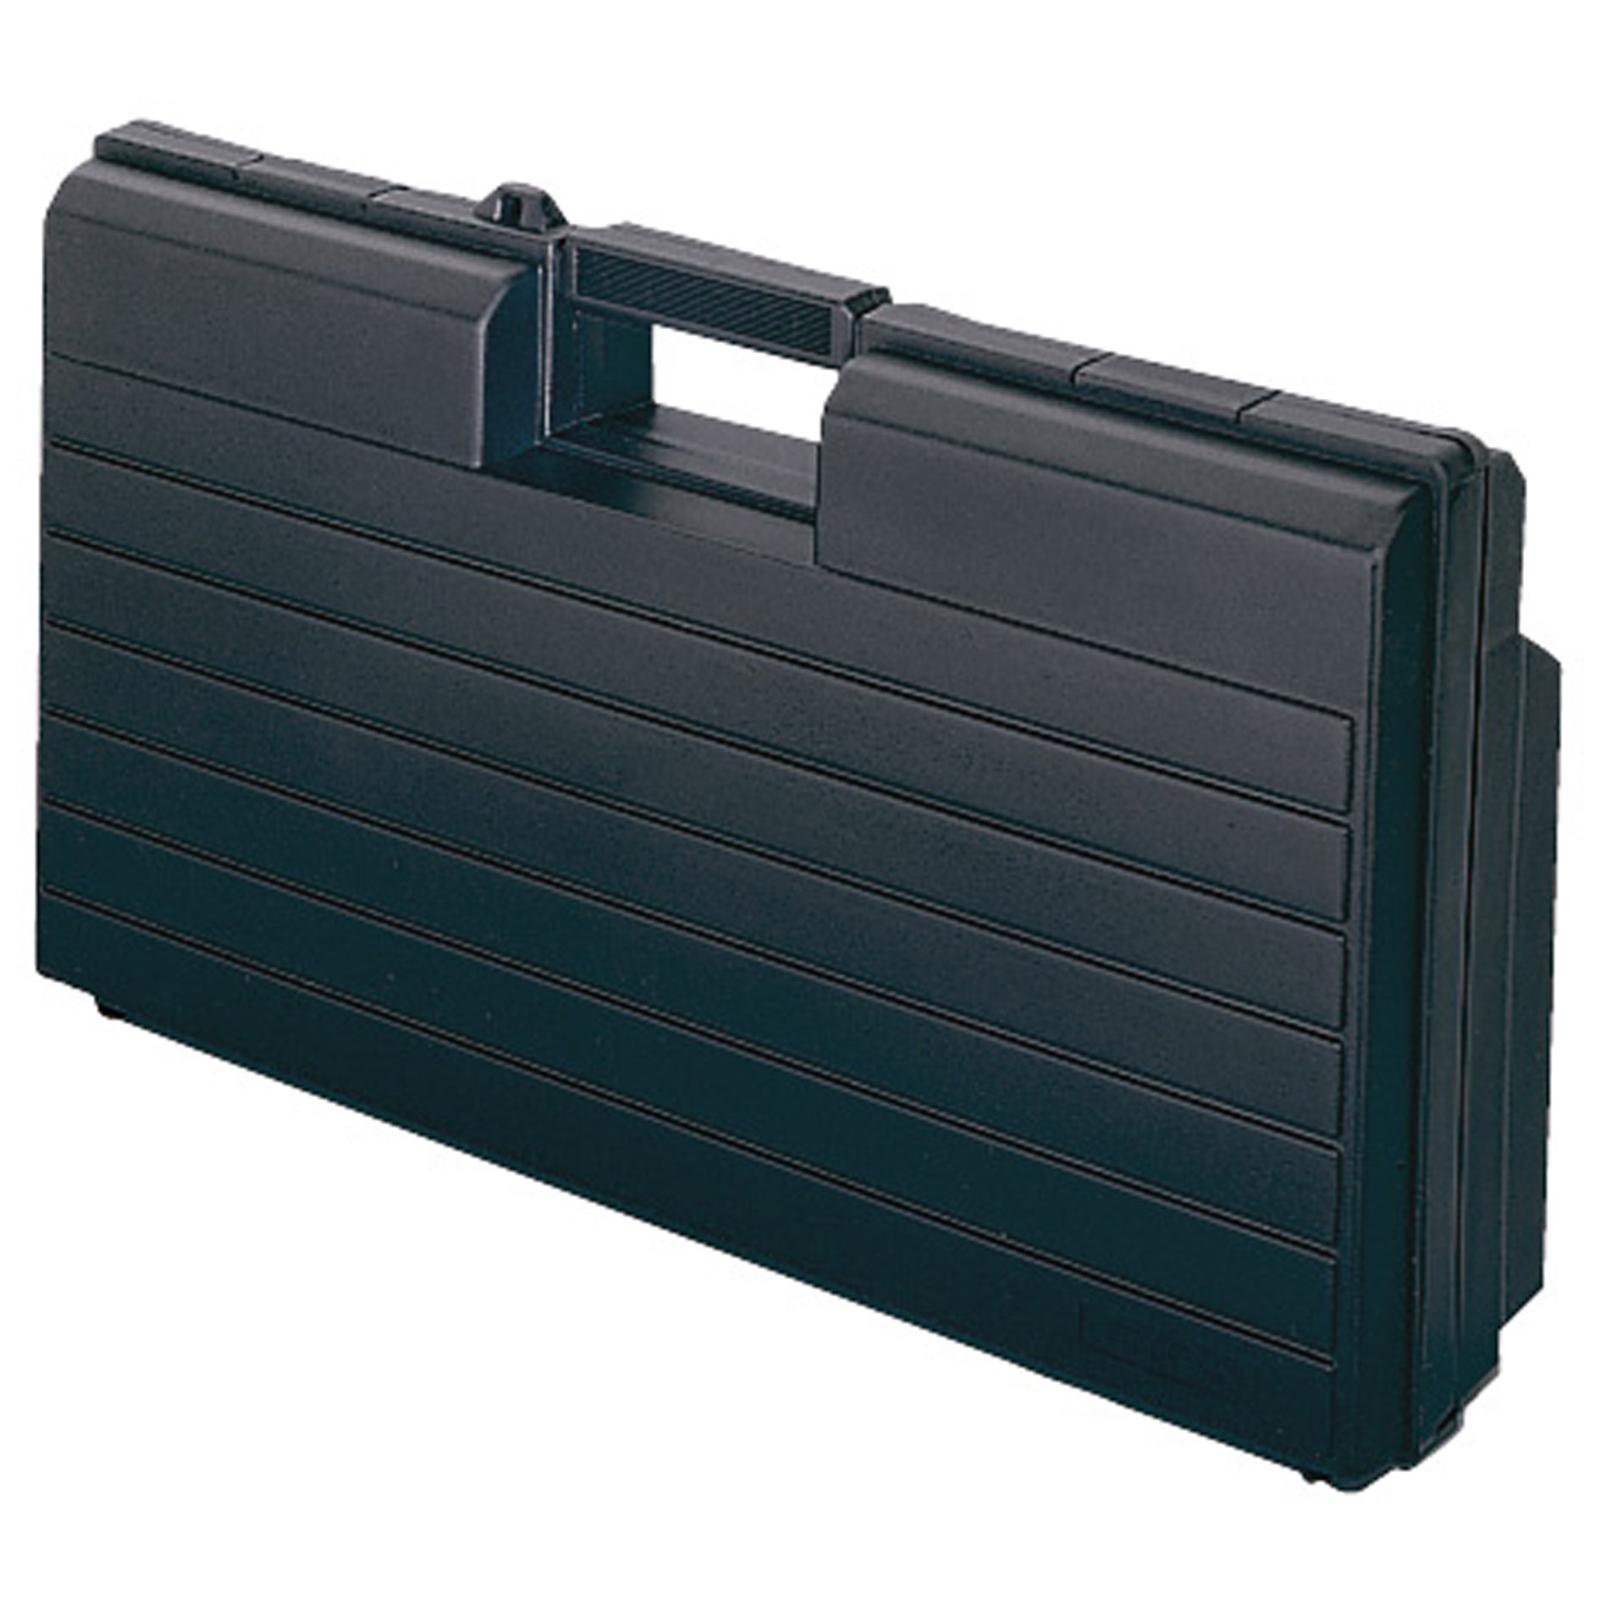 "Stack-On 19"" Road Box Tool Box, Black"